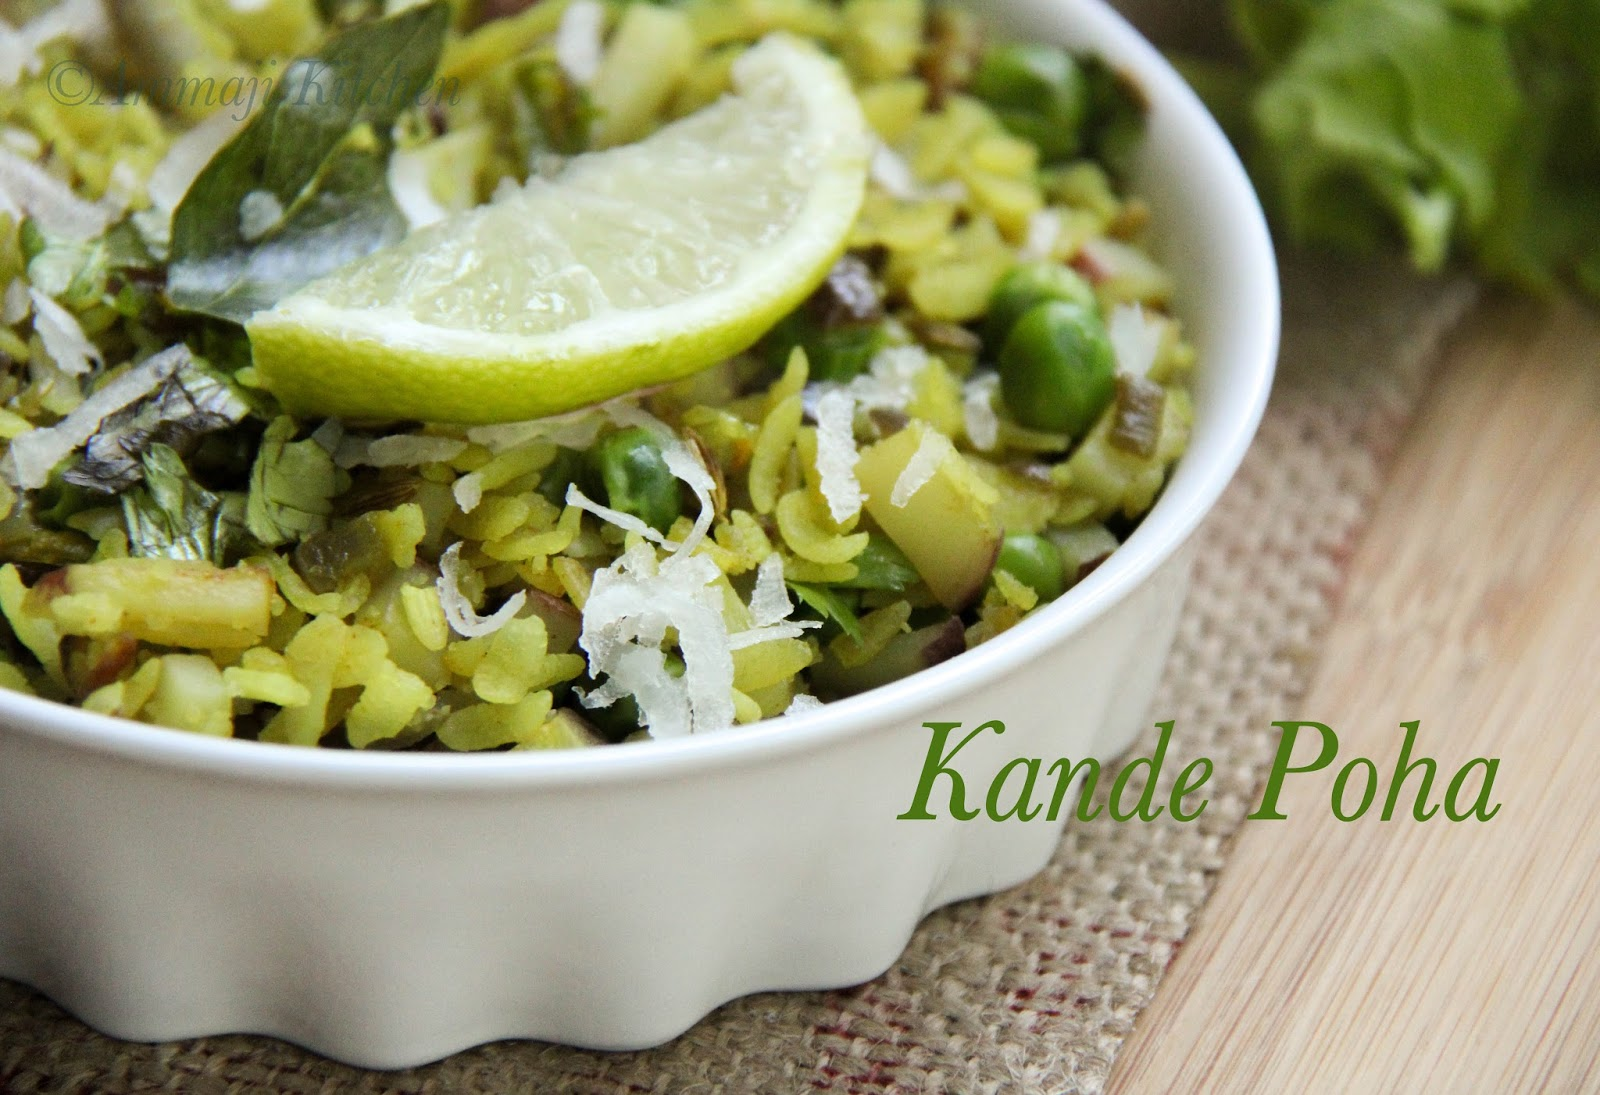 Kande poha version 2 indian food recipes ammaji kitchen kande poha forumfinder Gallery